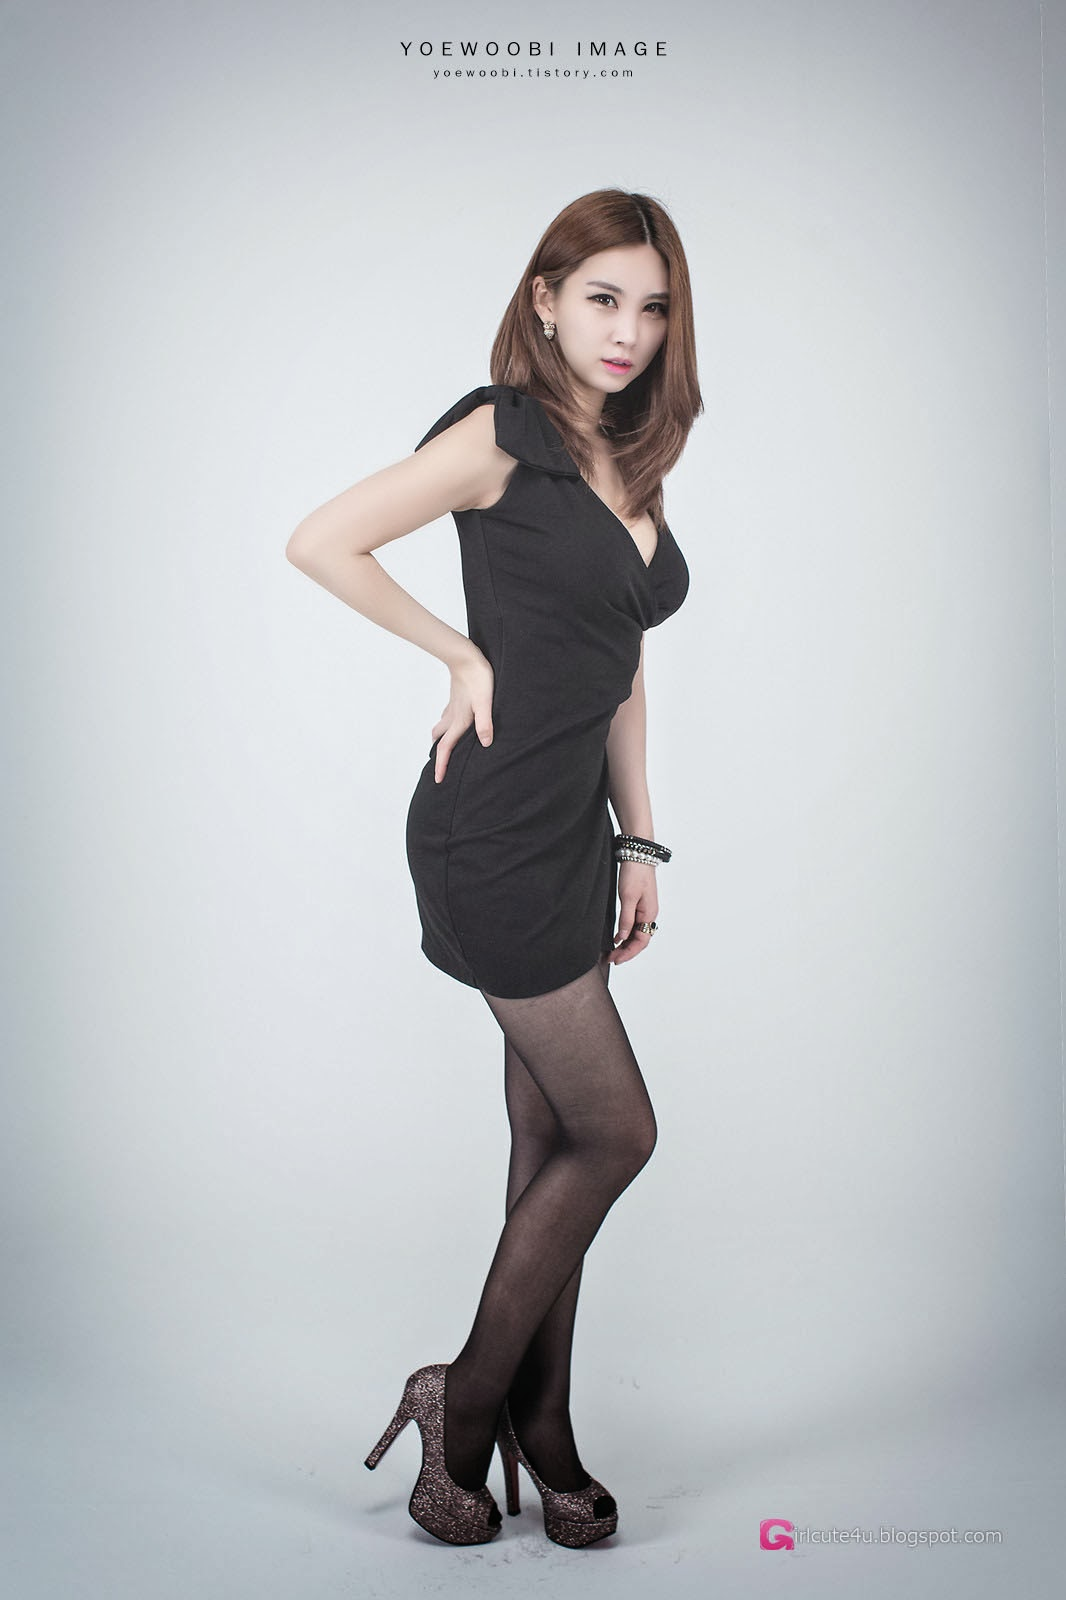 Lee Eun Yu - Little Black Dress ~ Cute Girl - Asian Girl